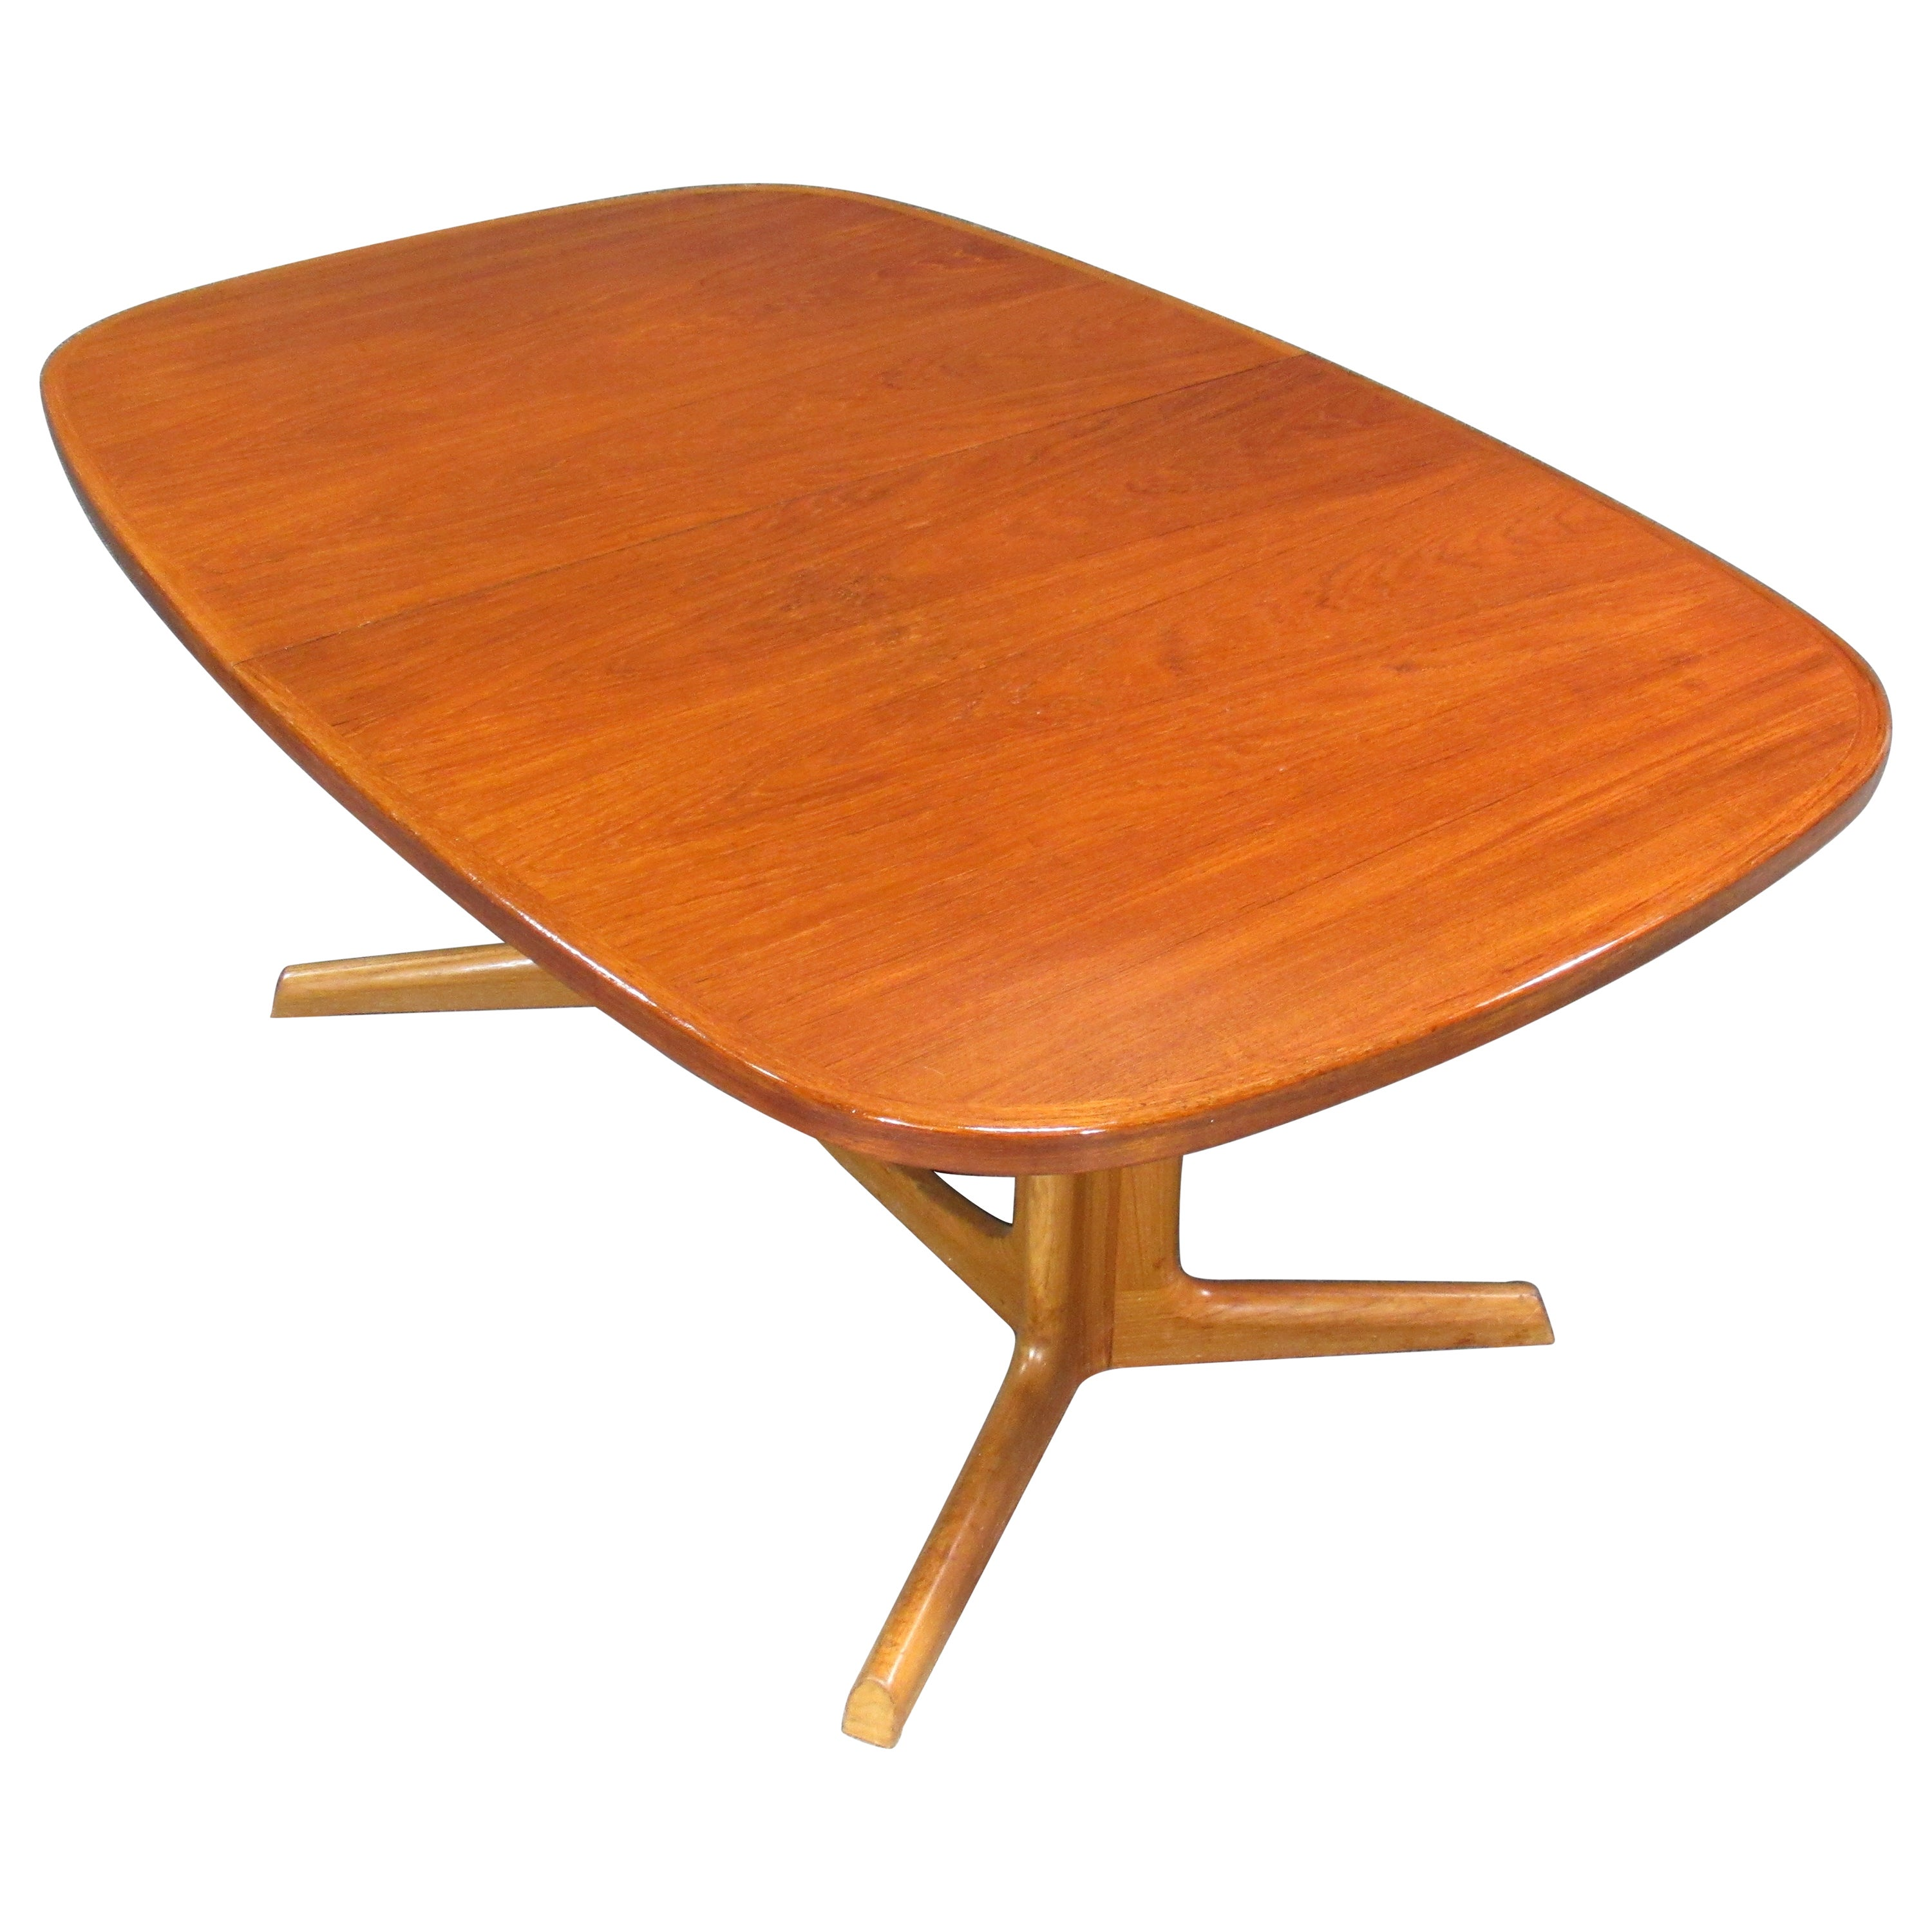 Danish Modern Niels Otto Møller for Gudme Teak Extension Trestle Dining Table